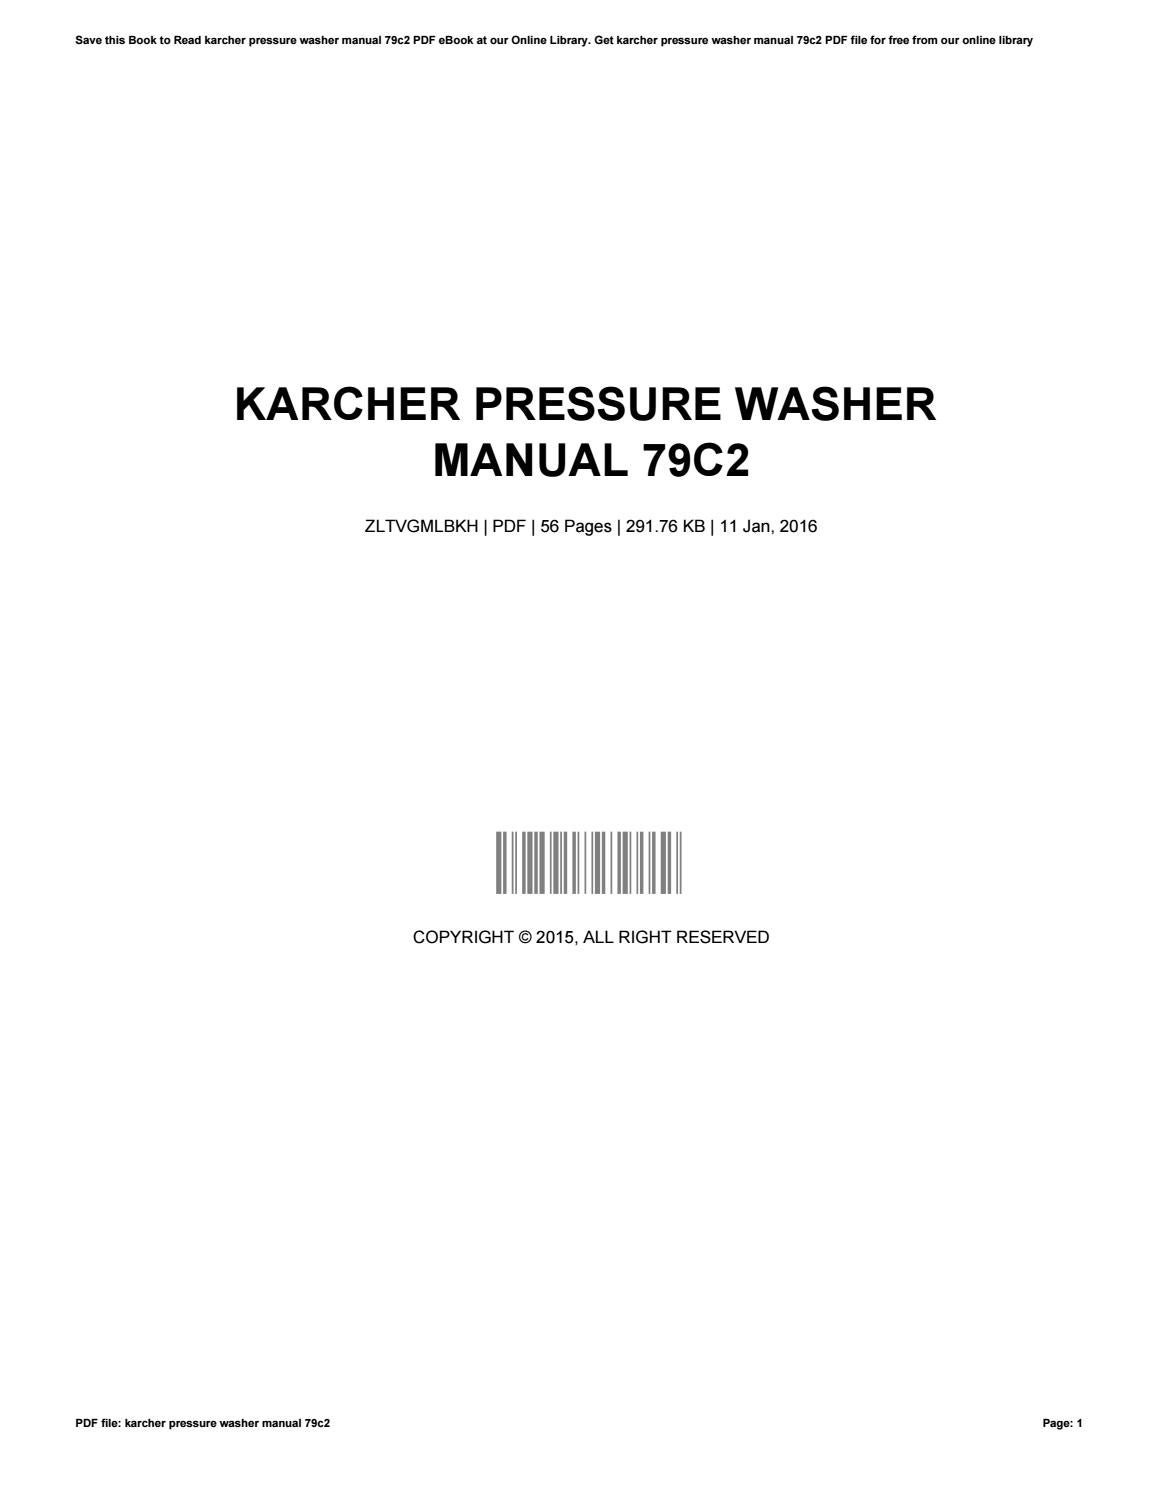 Karcher Pressure Washer Instructions Manual Ebook Catcafemad Hds 580 Wiring Diagram Save This Book To Read